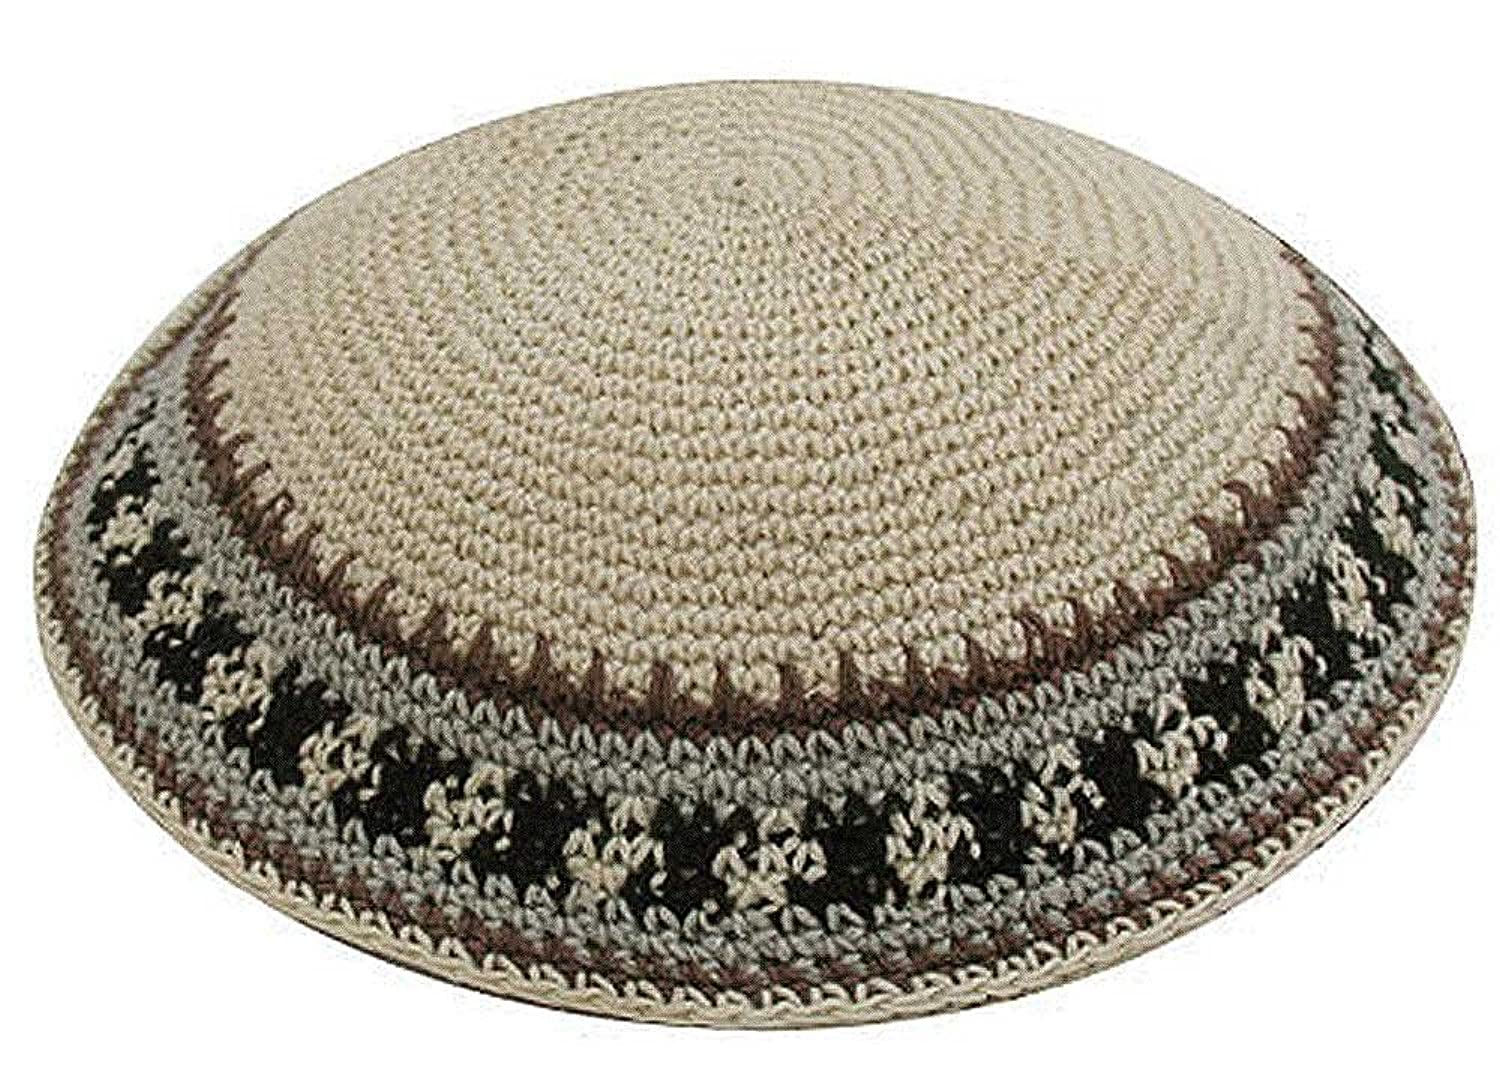 Amazon.com: Zion Judaica Knit Quality Kippot for Affairs or Everyday ...